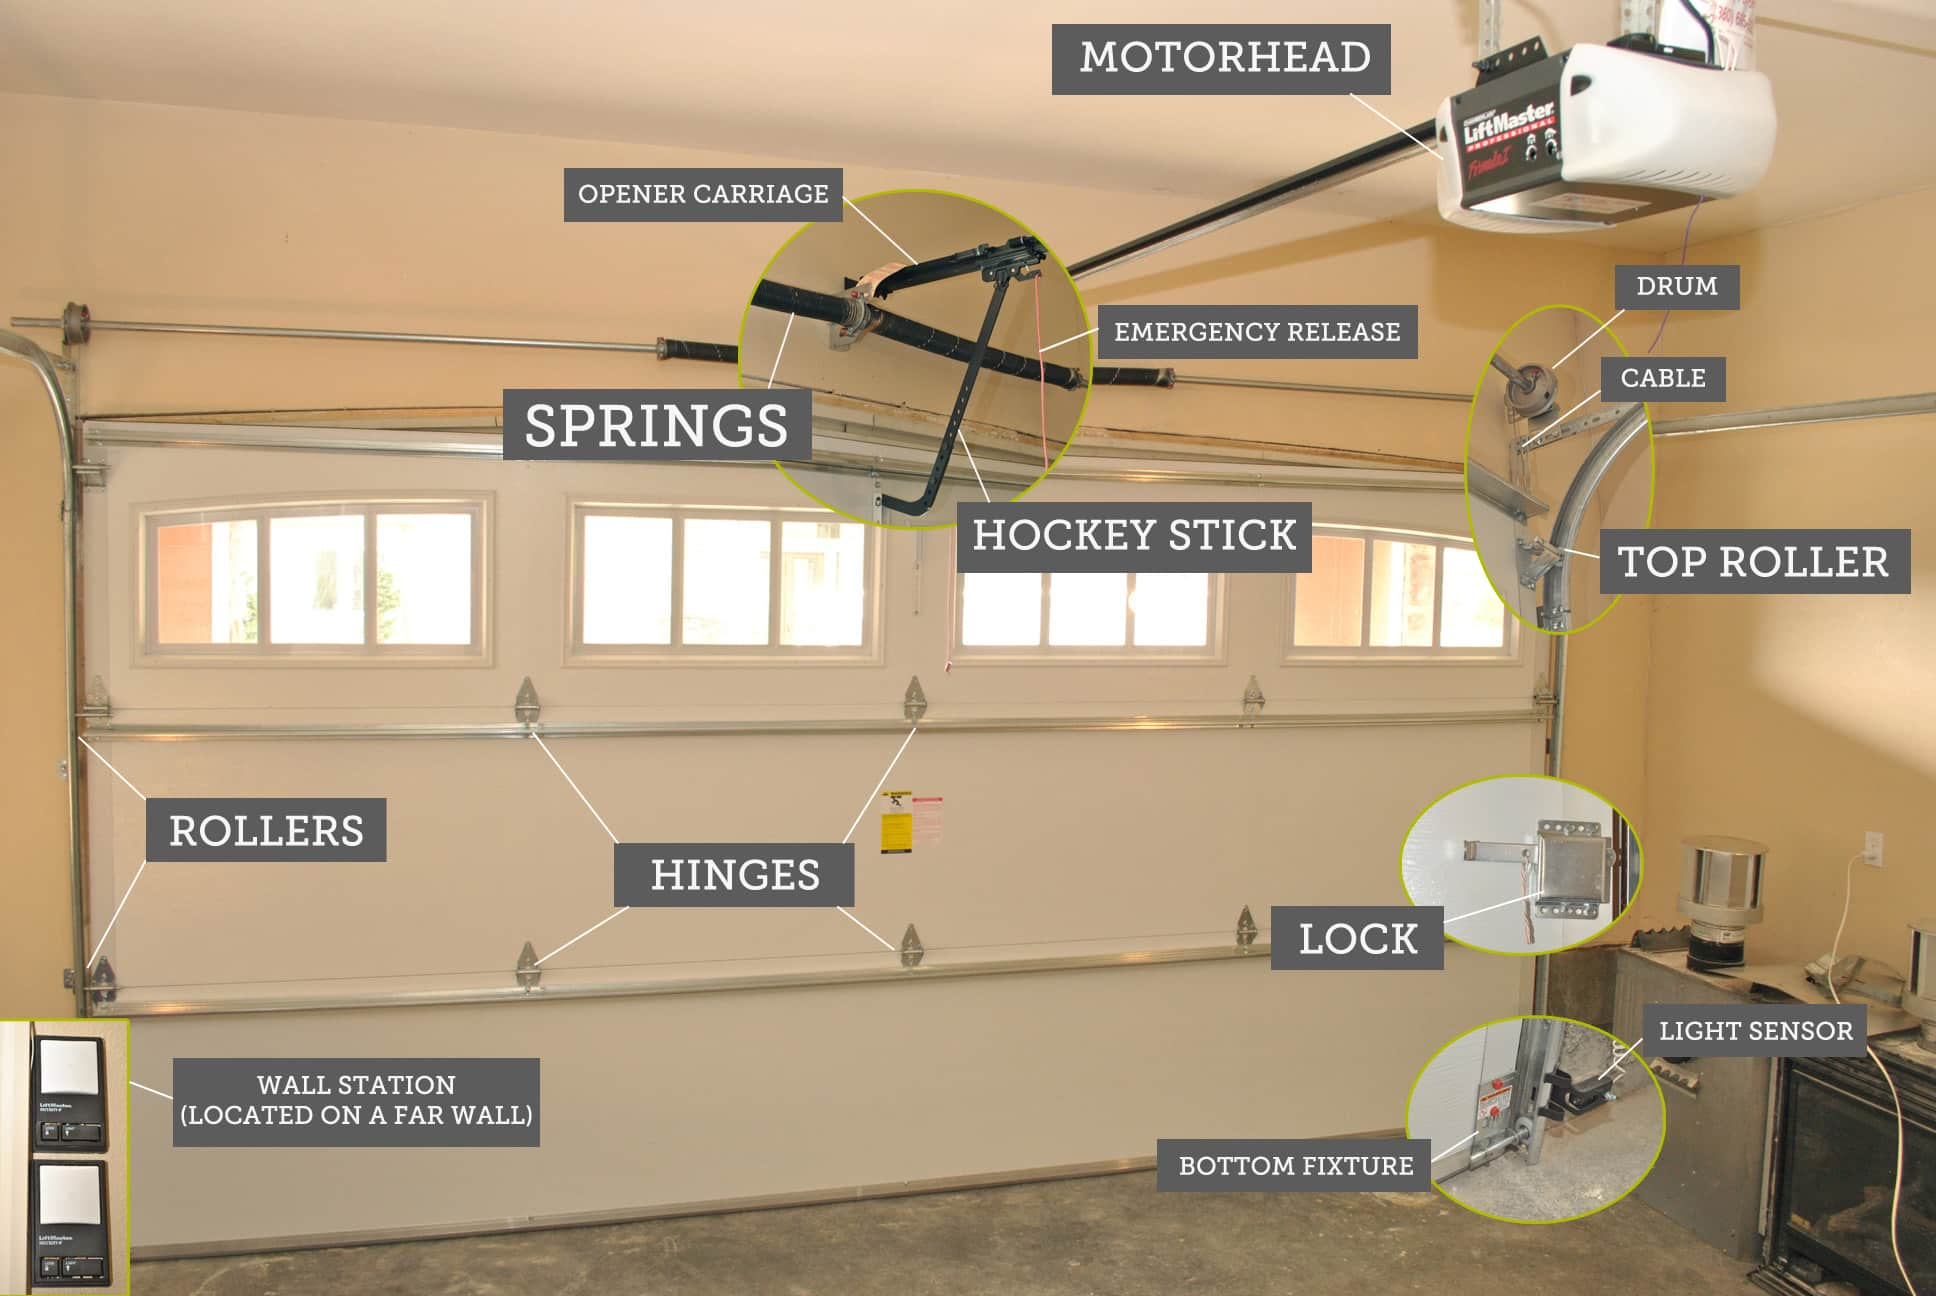 How to troubleshoot garage door problems oasis garage doors how to troubleshoot garage door problems rubansaba